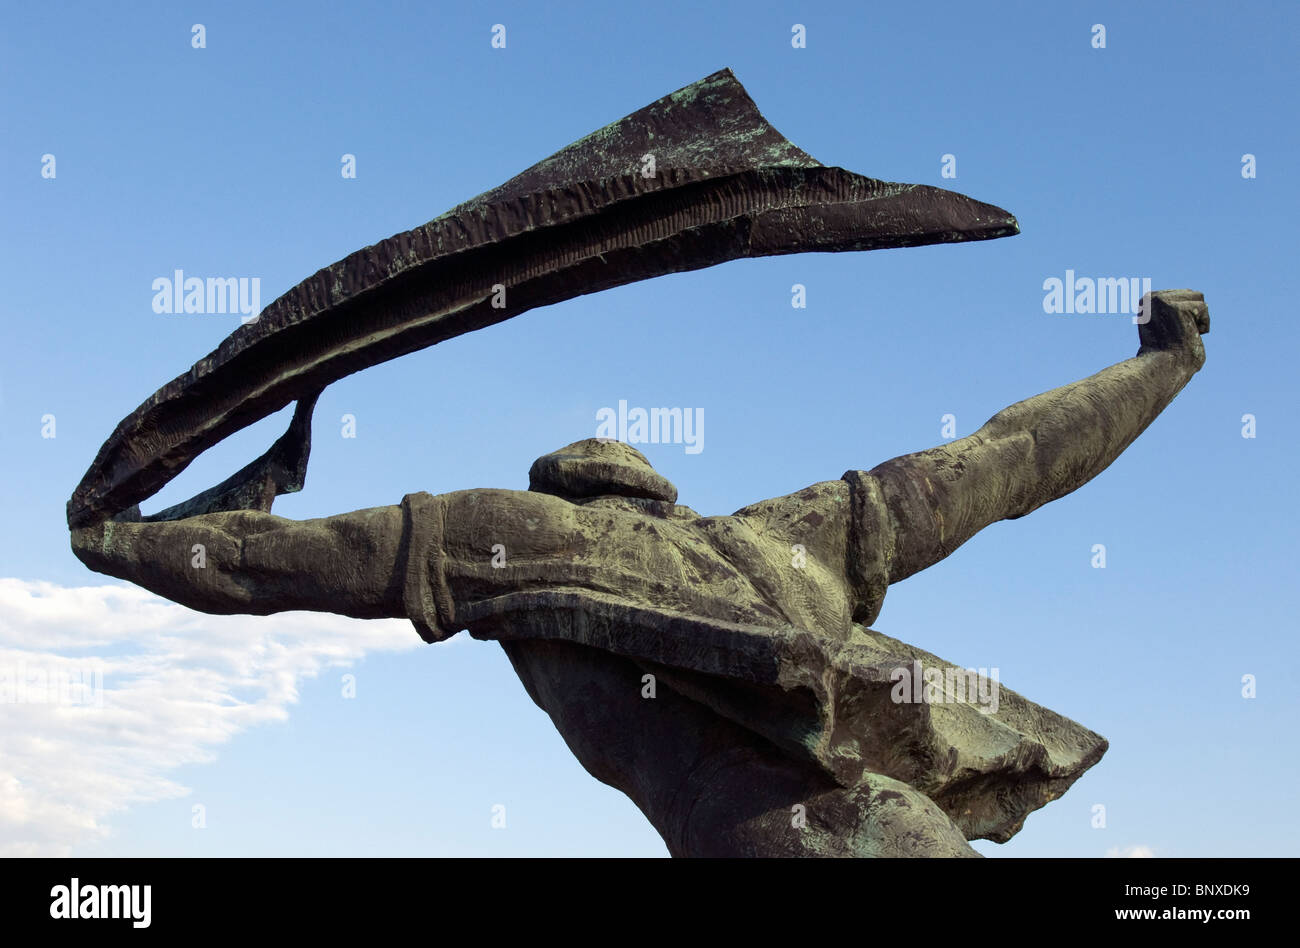 Republic of Councils Monument by Istvan Kiss, Statue (or Memento) Park (Szoborpark) in Budapest, Hungary - Stock Image